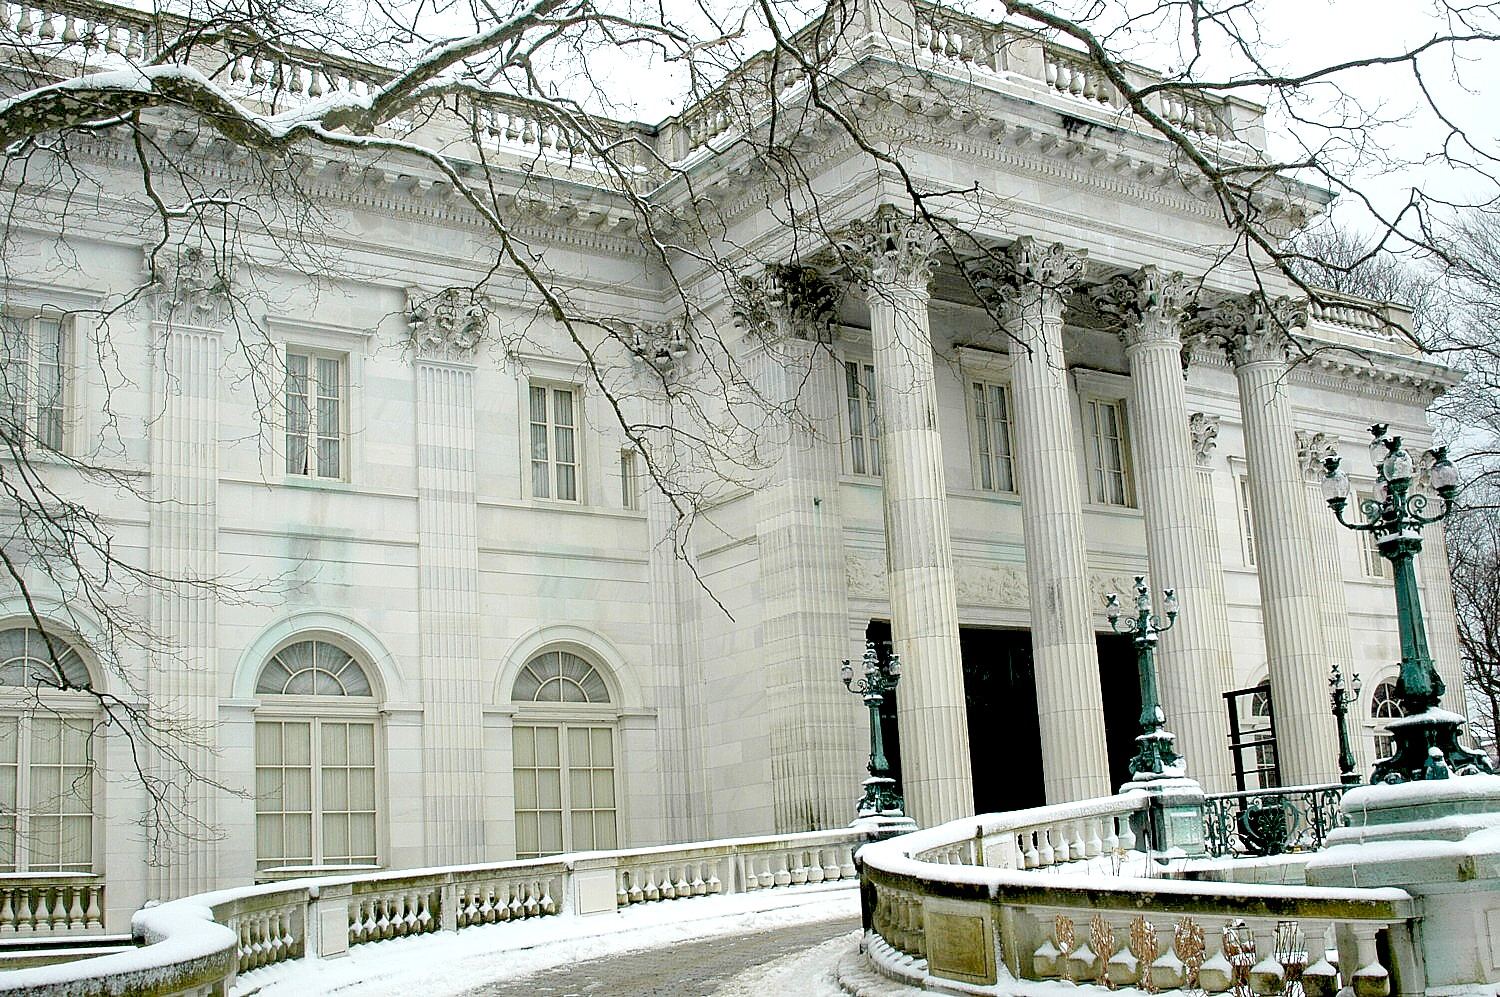 """Marble House, a grand stage for Alva Vanderbilt's climb to social and political power, first as a leading society hostess and later as a leader of the """"Votes for Women"""" campaign, is one of the special venues for Newport Christmas © 2016 Karen Rubin/goingplacesfarandnear.com"""